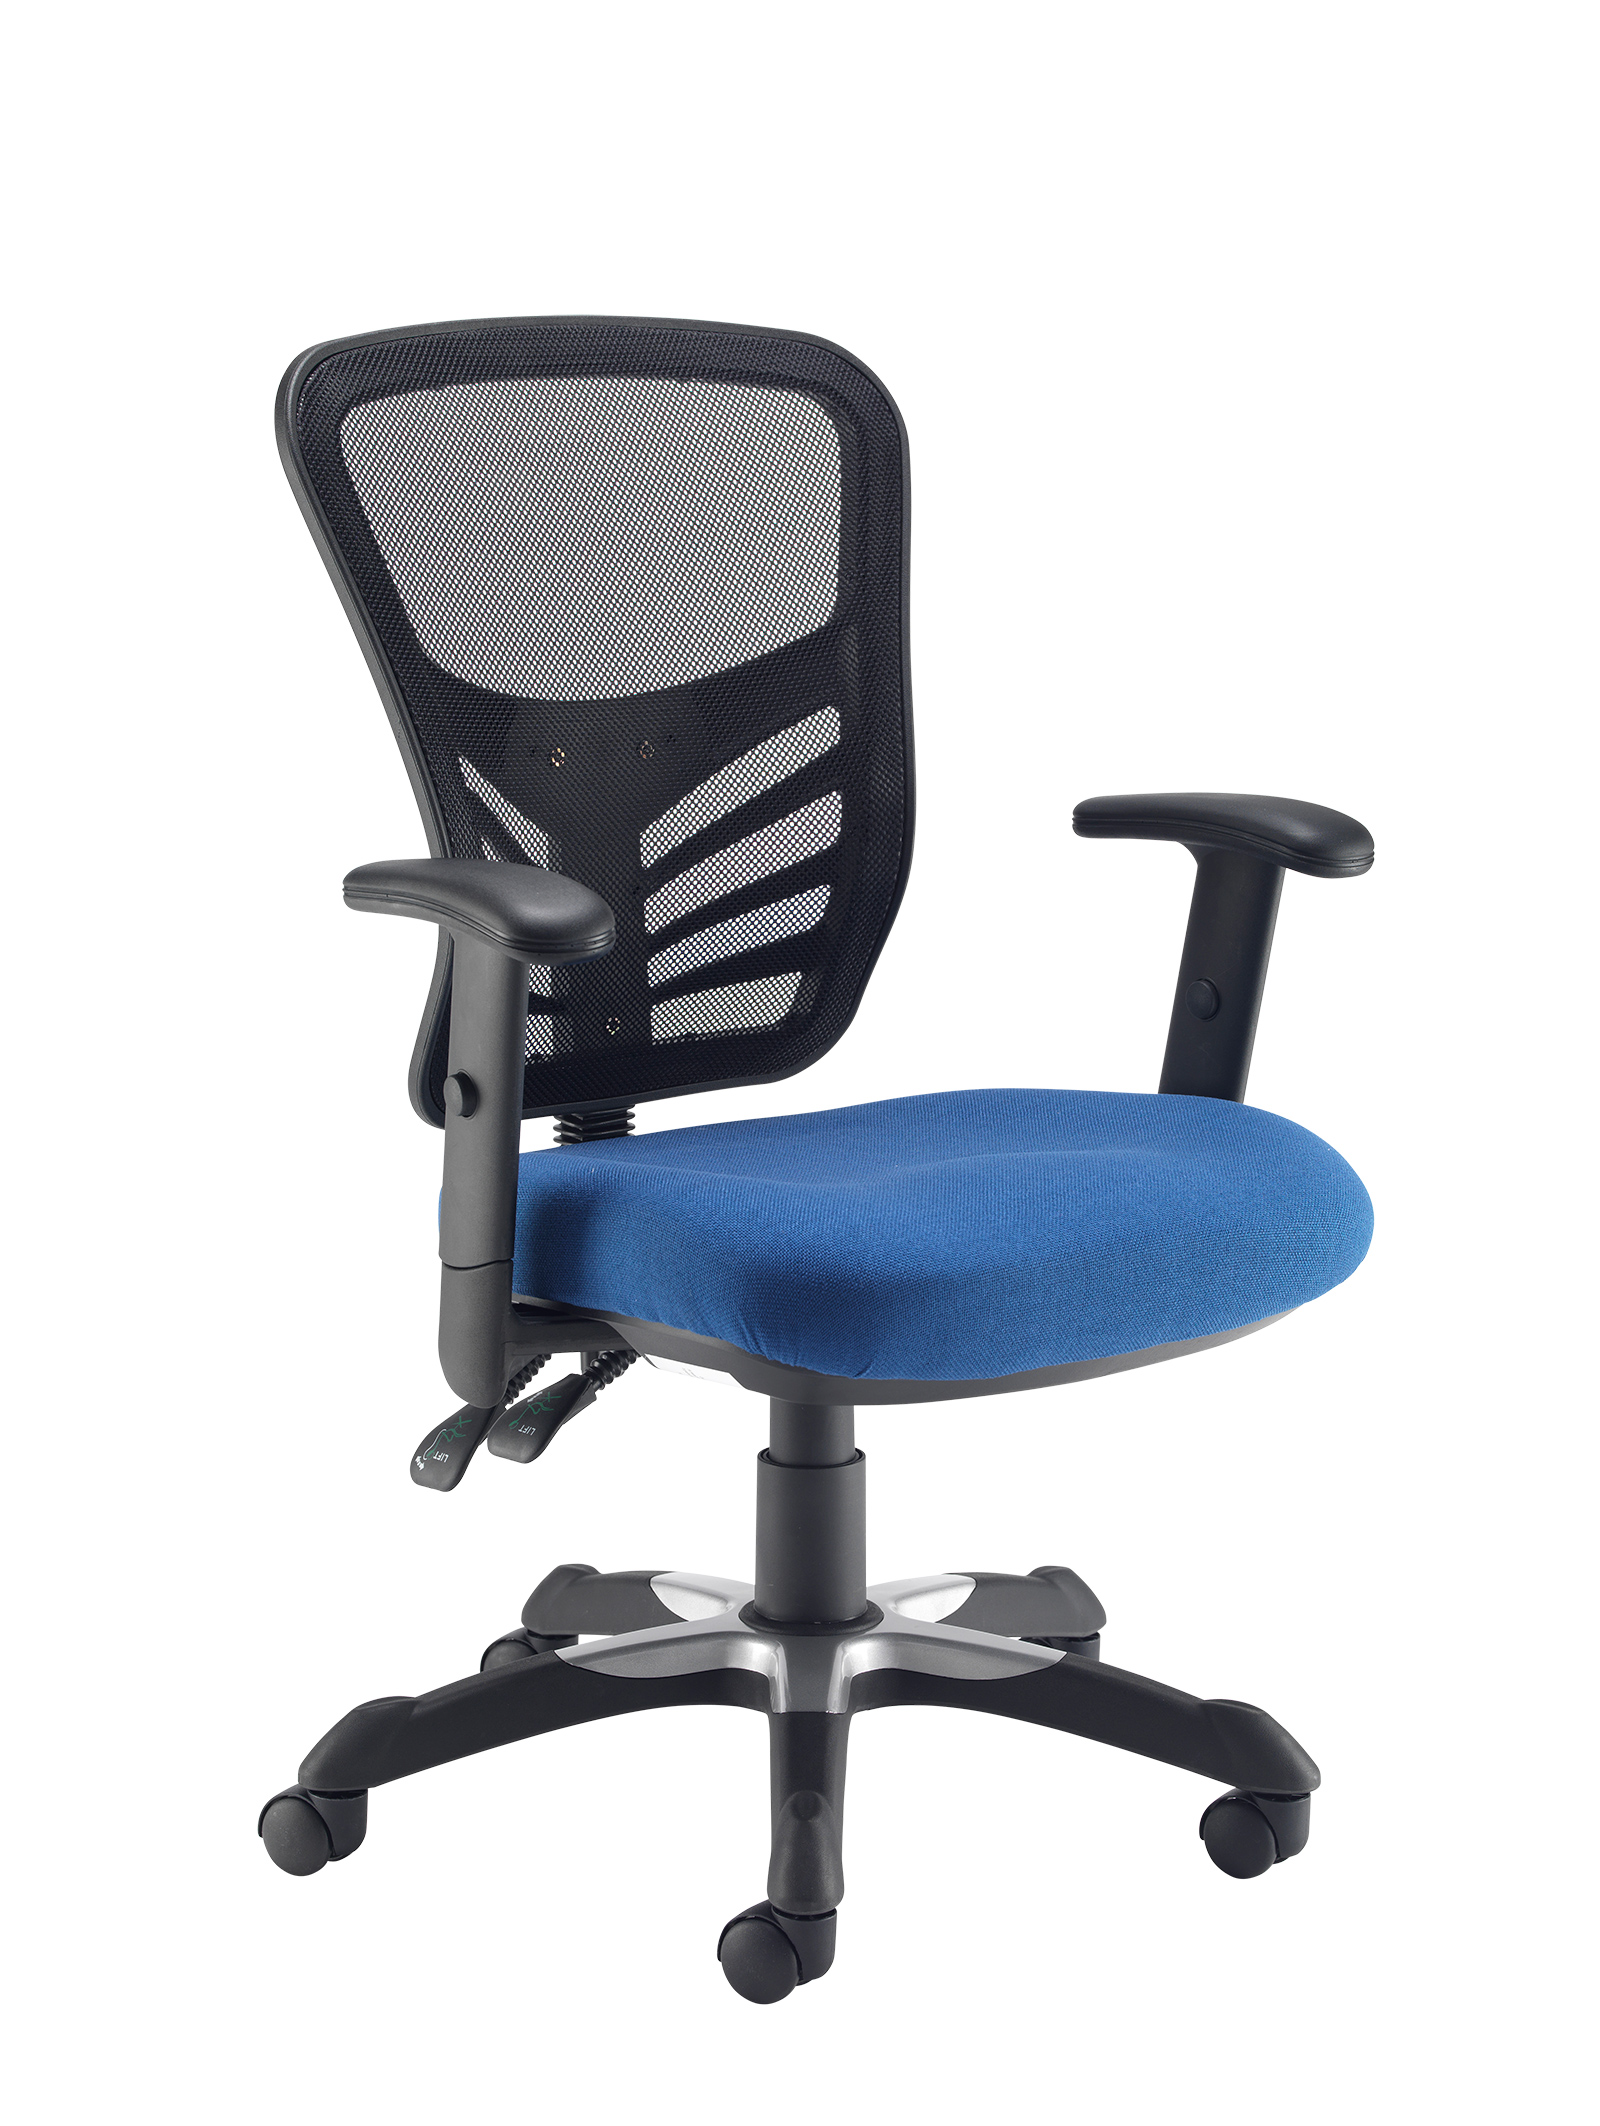 Vantage mesh 2 lever chair task chair with adjustable arms - blue